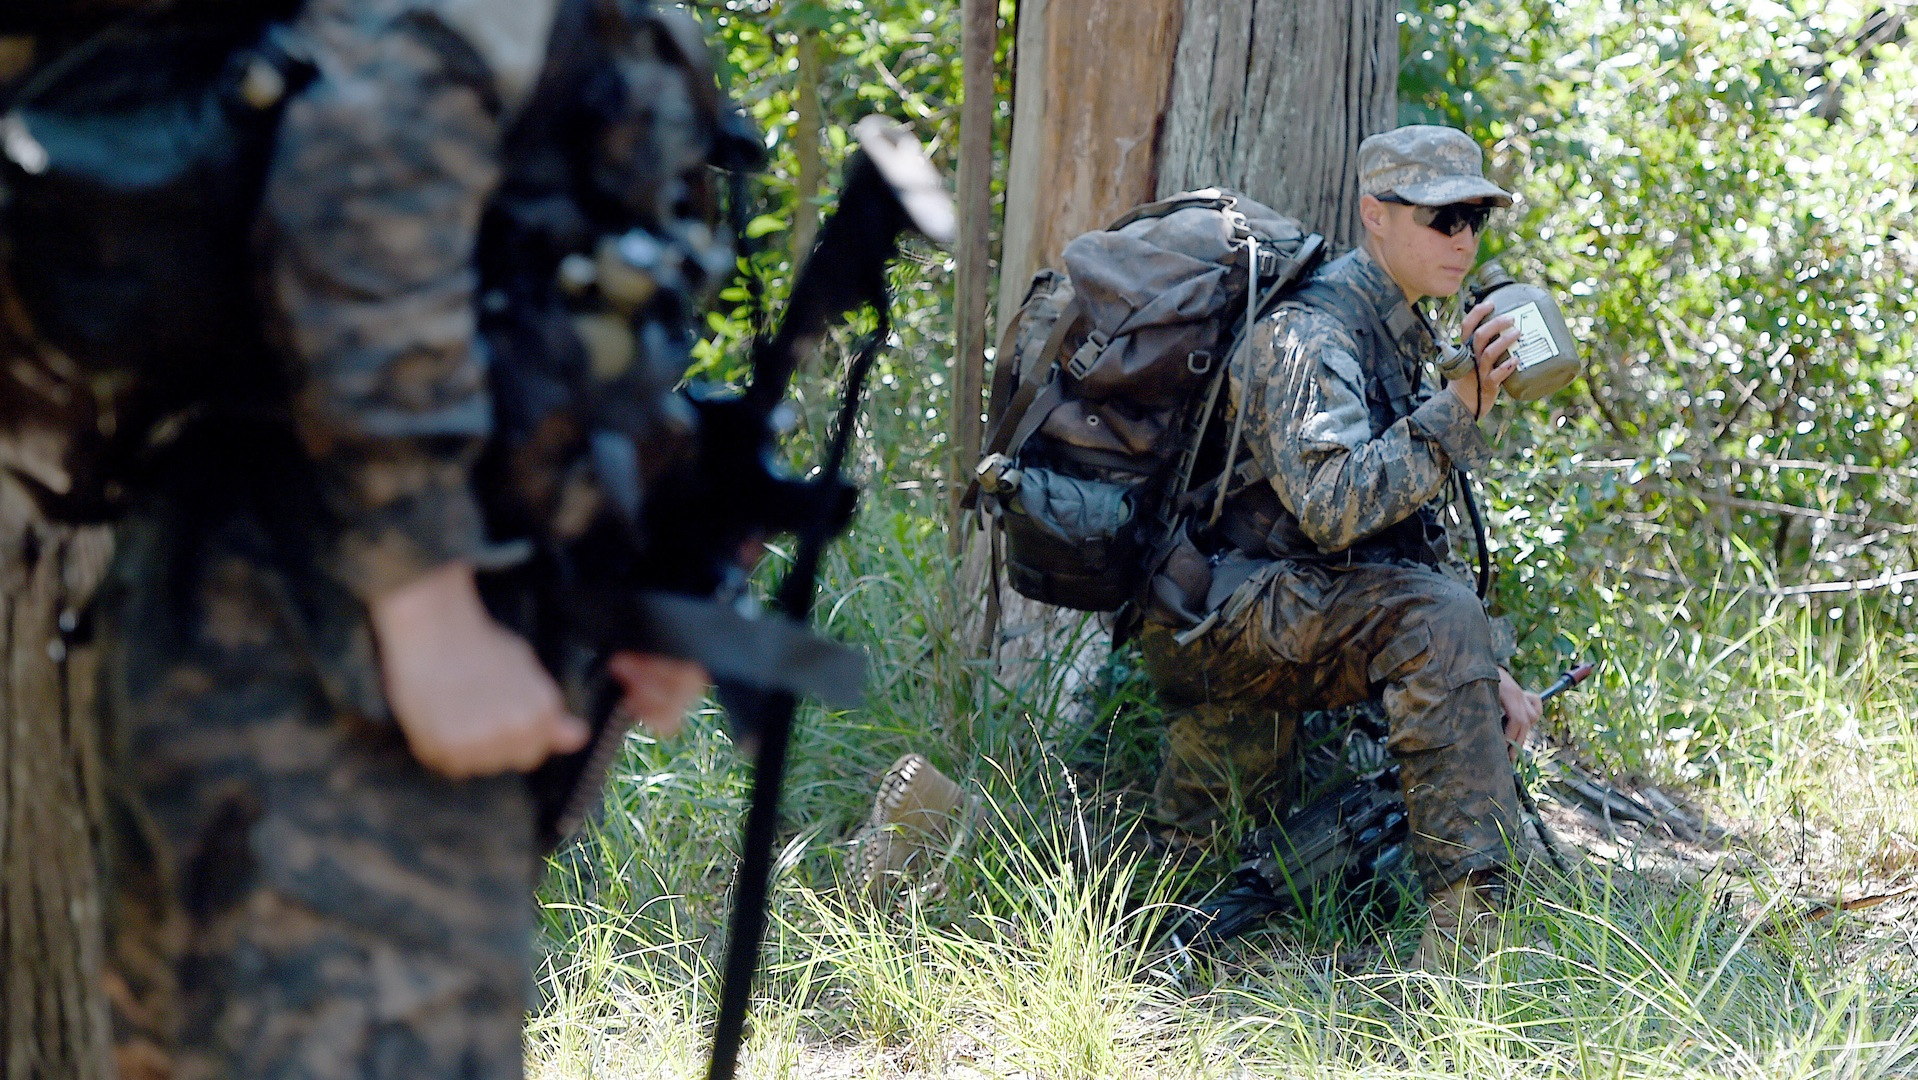 As women finish Ranger course, military faces new pressure on gender barriers